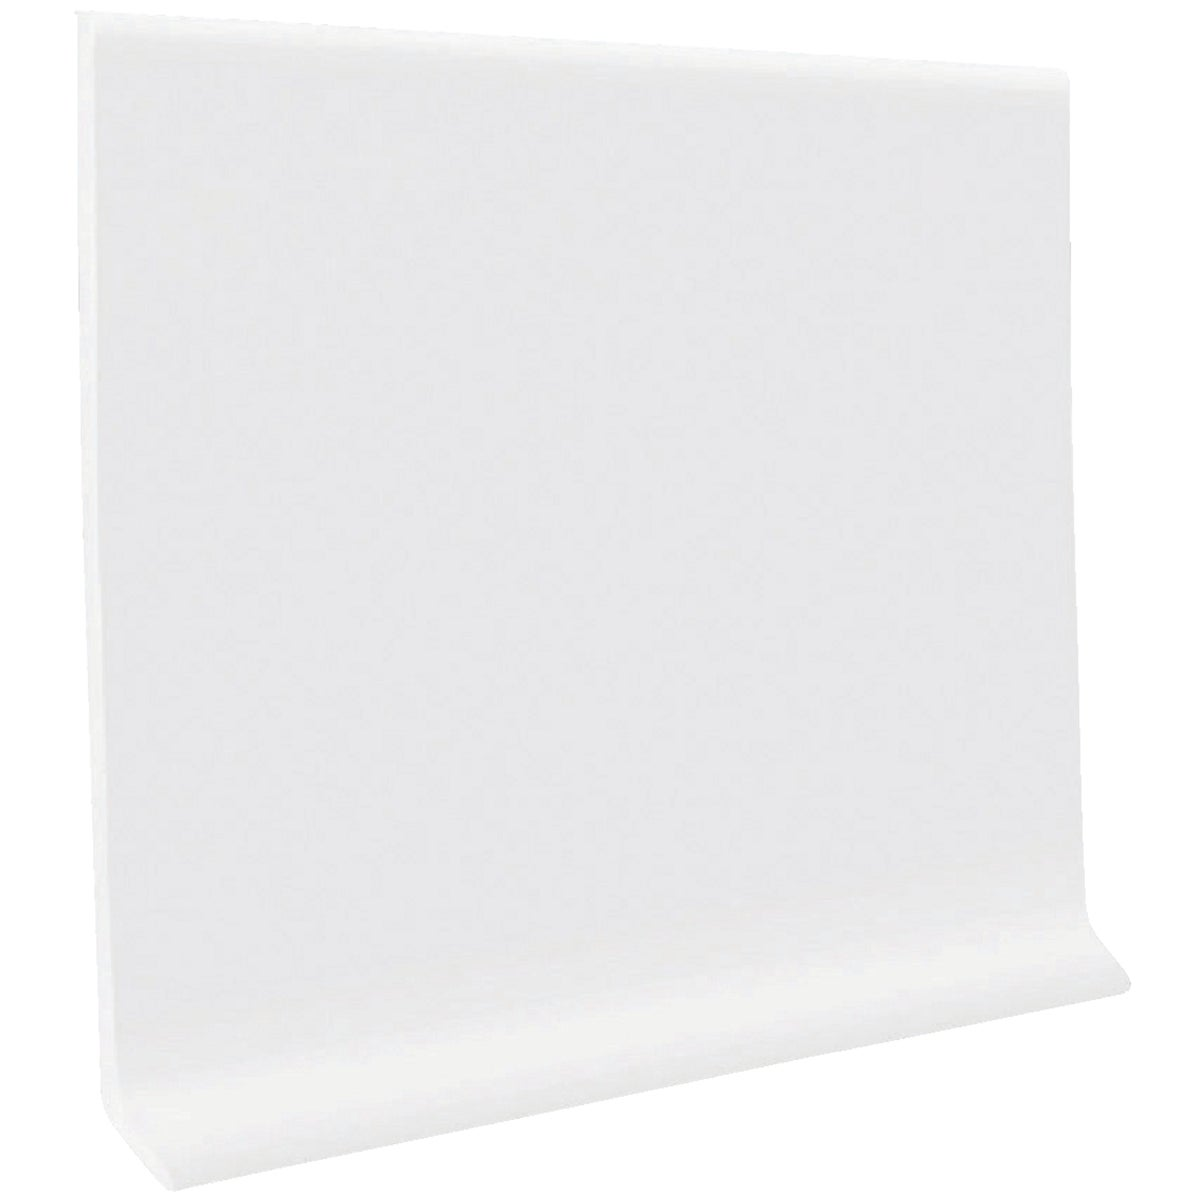 "4""X4' WHITE WALL BASE - H1640C54P161 by Roppe Corporation"